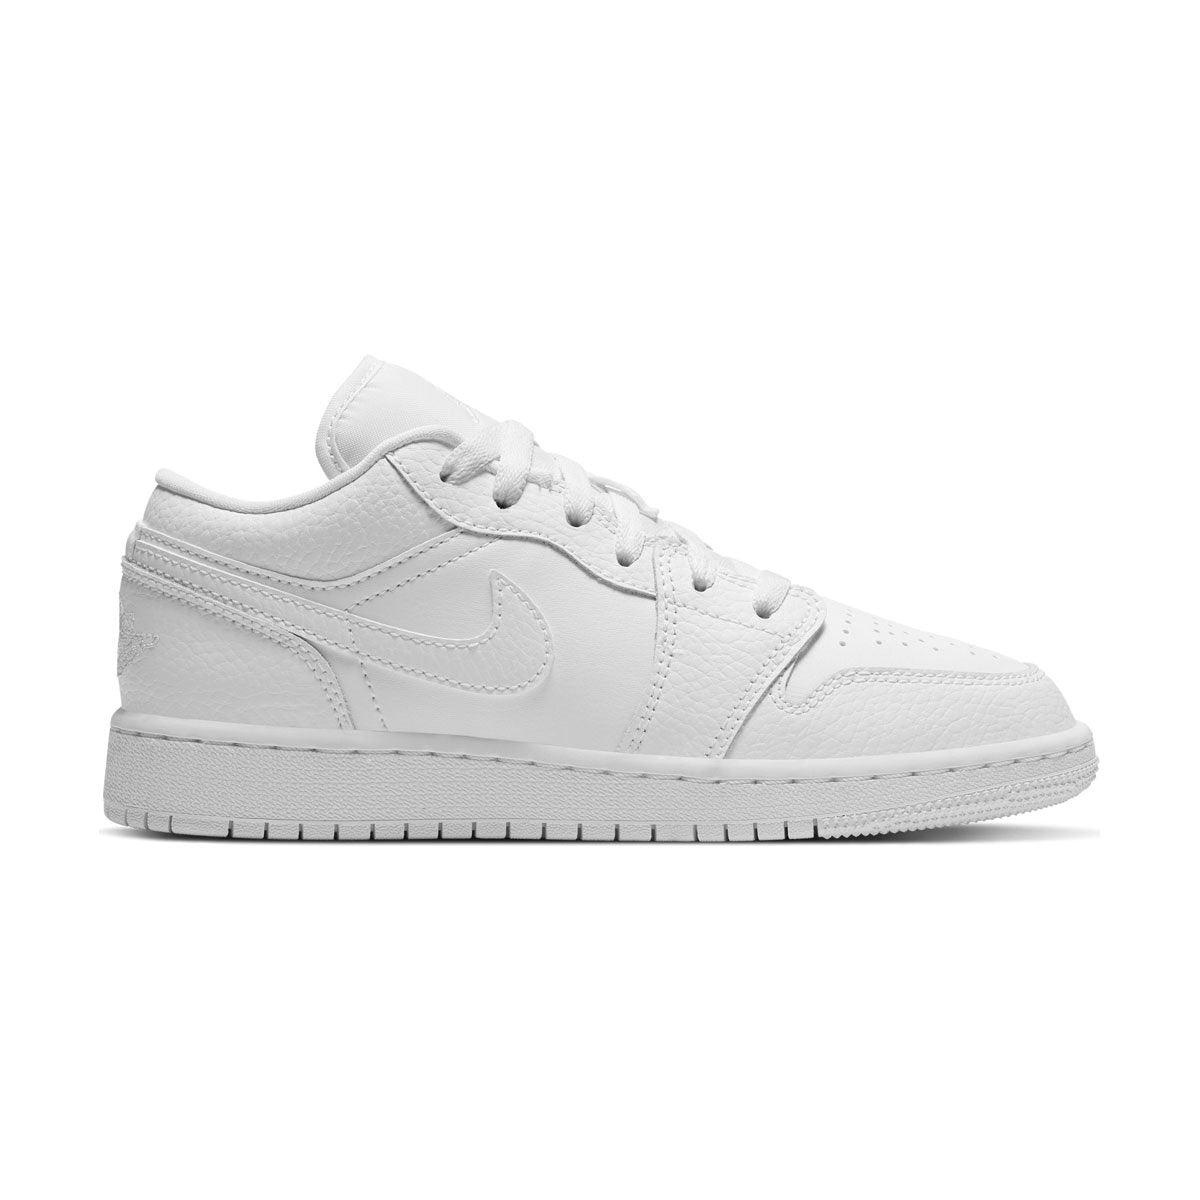 Big Kids Boys Air Jordan 1 Low